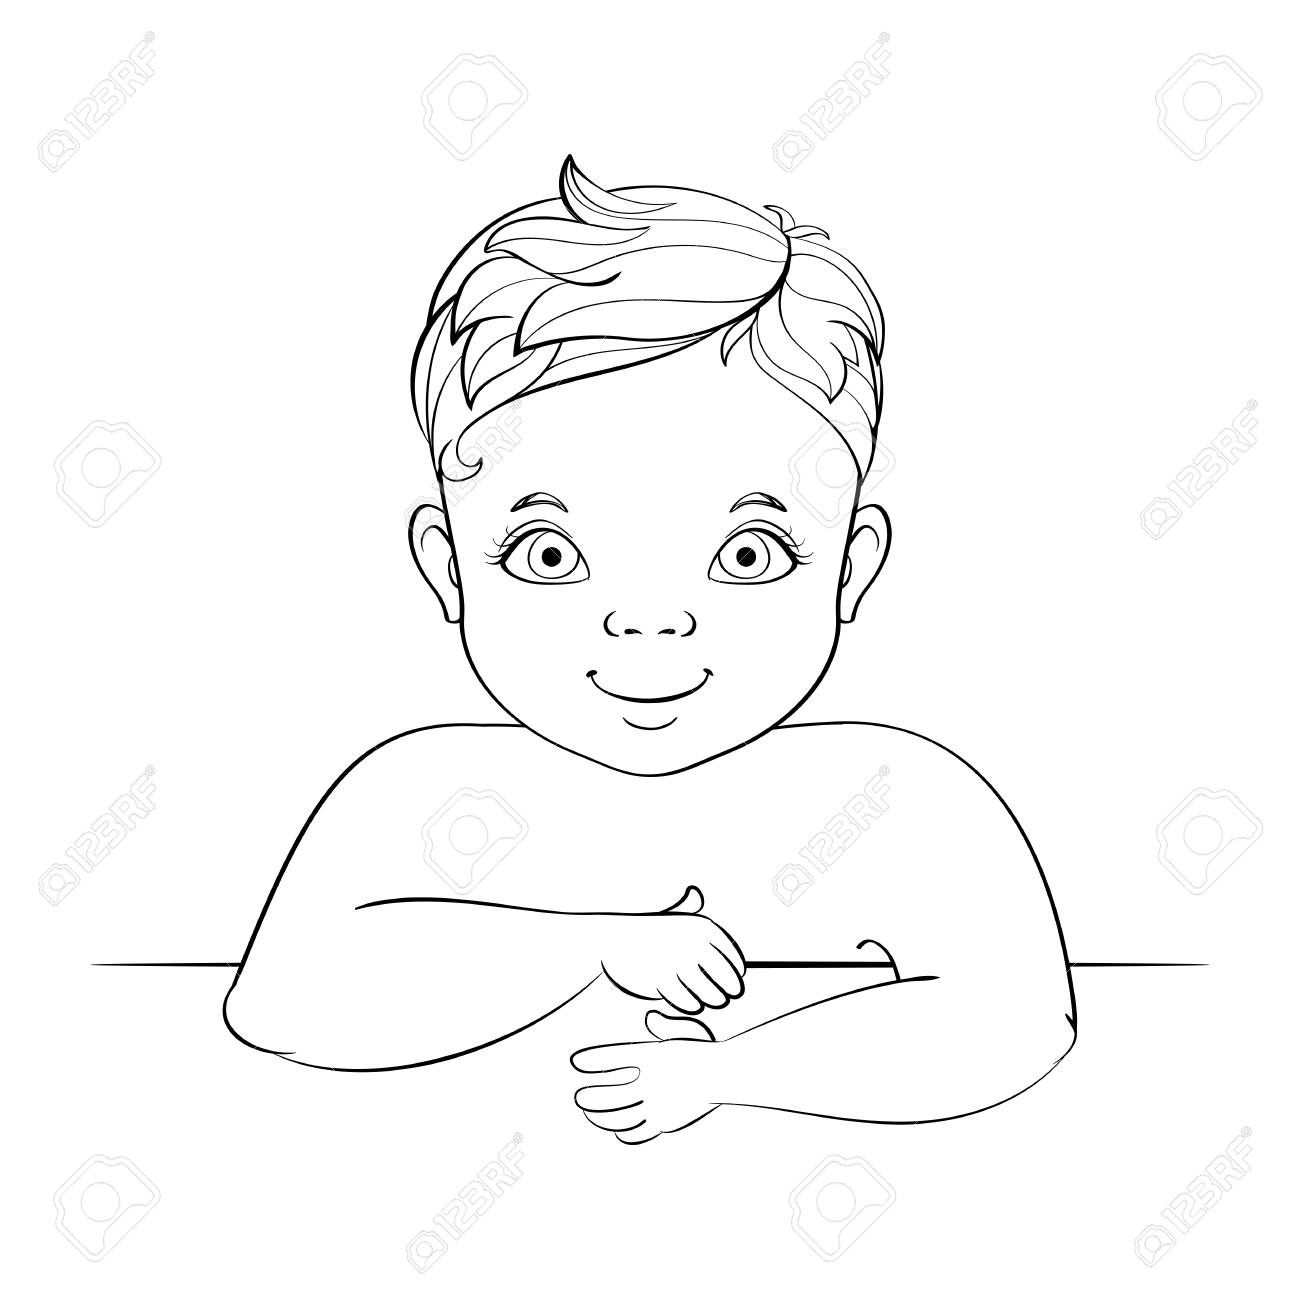 Smiling caucasian baby boy sketch stock vector 96172691